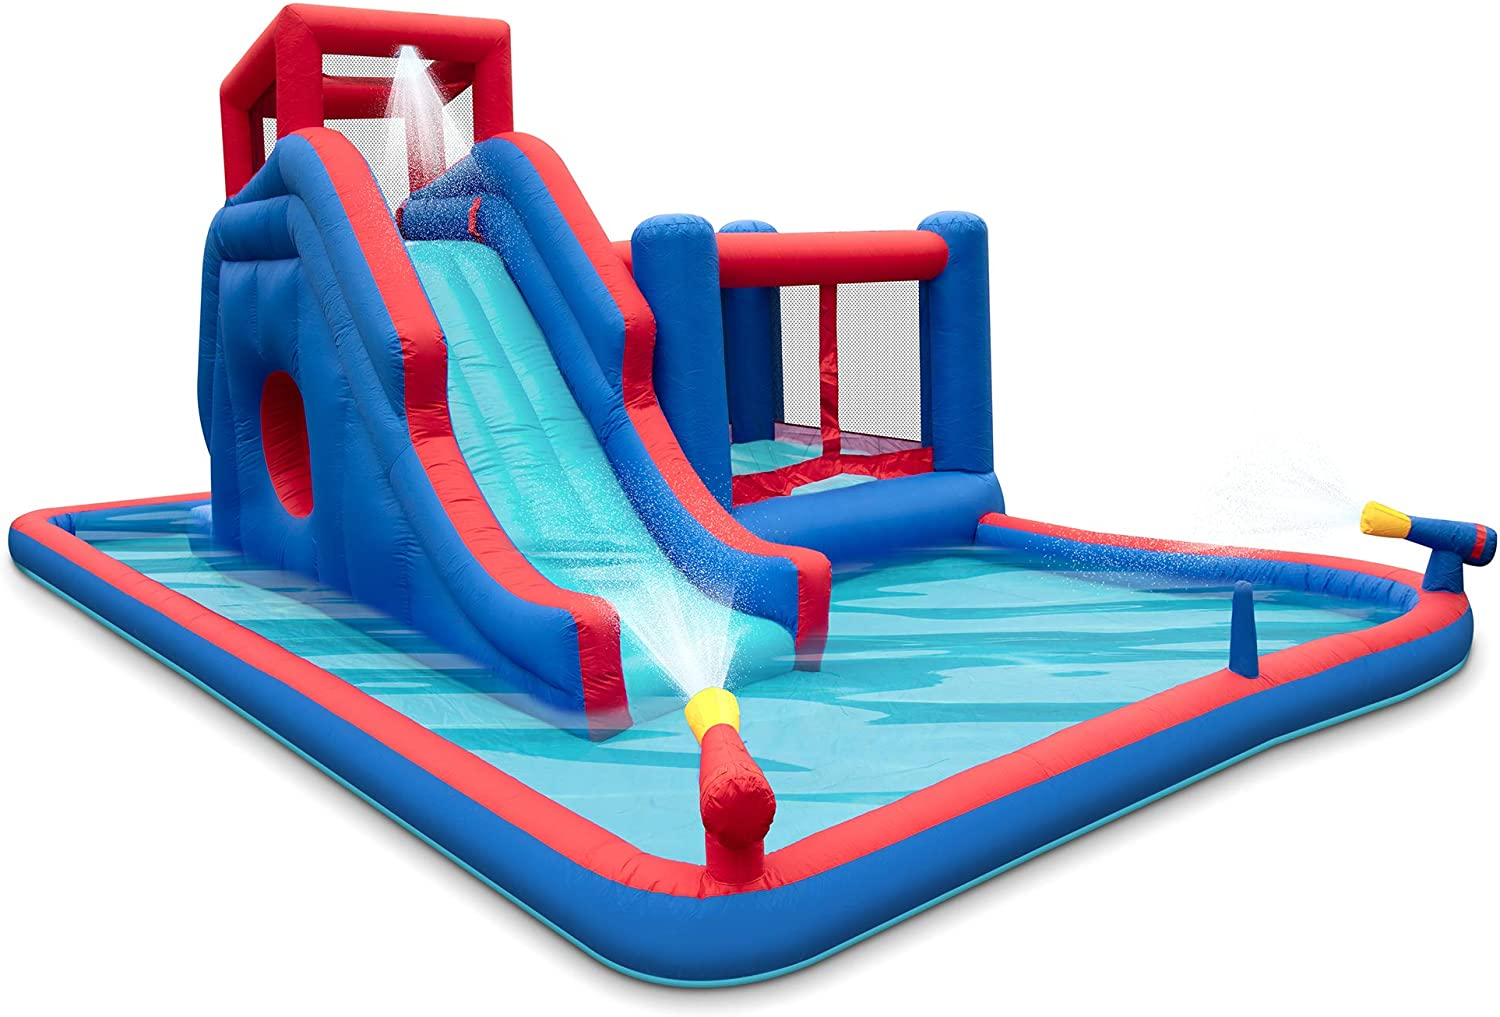 Deluxe Heavy-Duty Inflatable Water Slide Park with Bounce House, Climbing Wall, Slide, Bouncer, Splash Pool